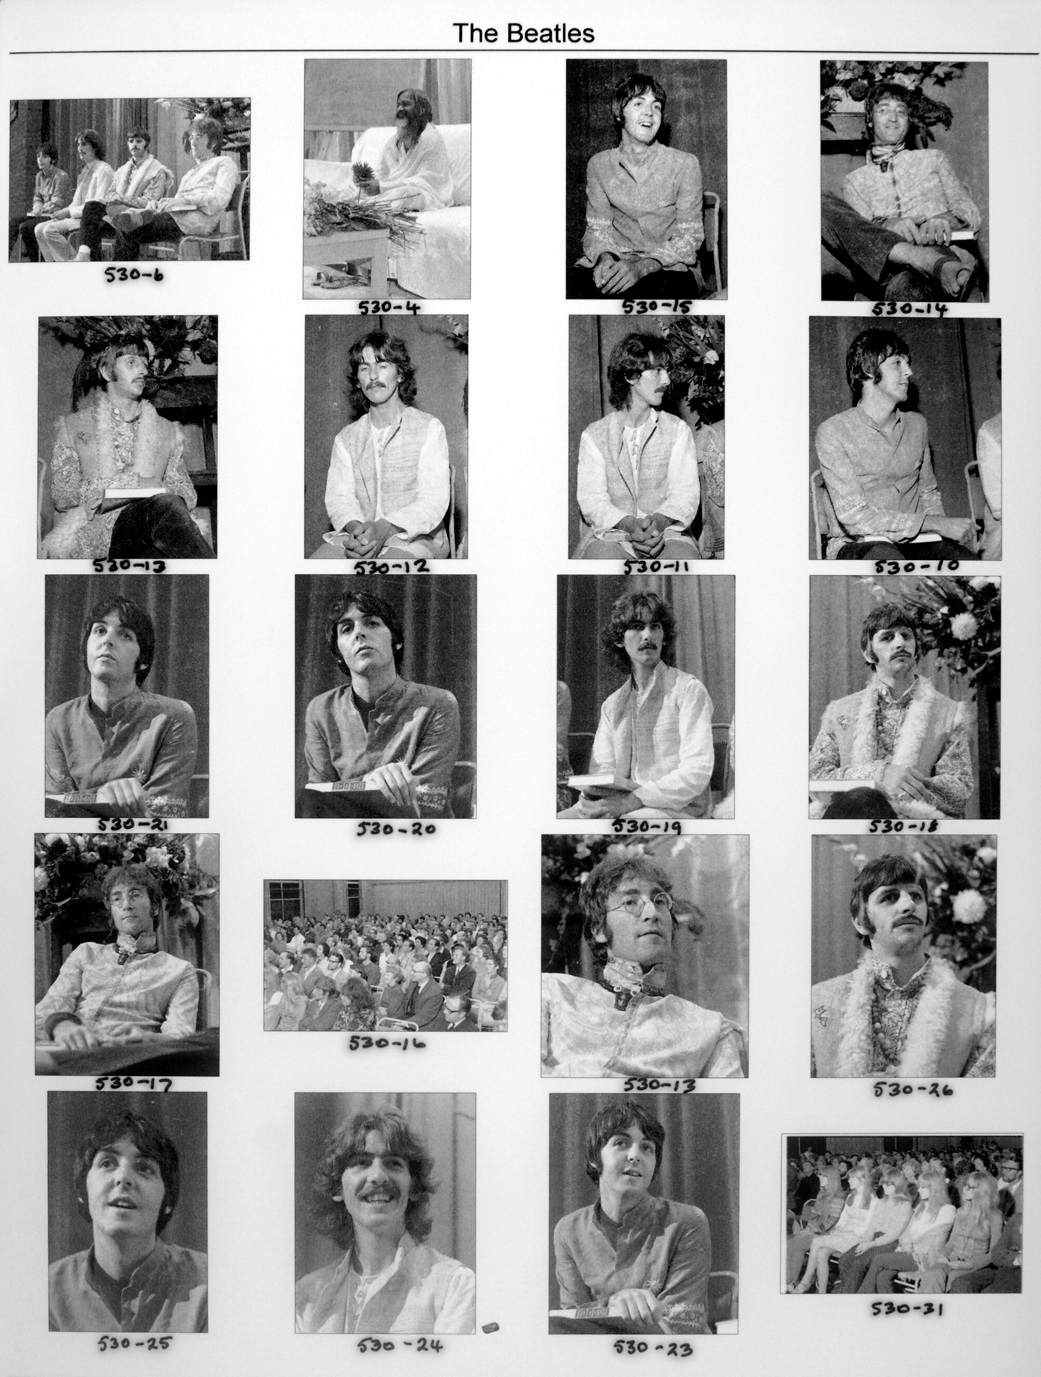 Lot 224 - THE BEATLES IN BANGOR 1967 - incredible collection of 101 previously unseen and